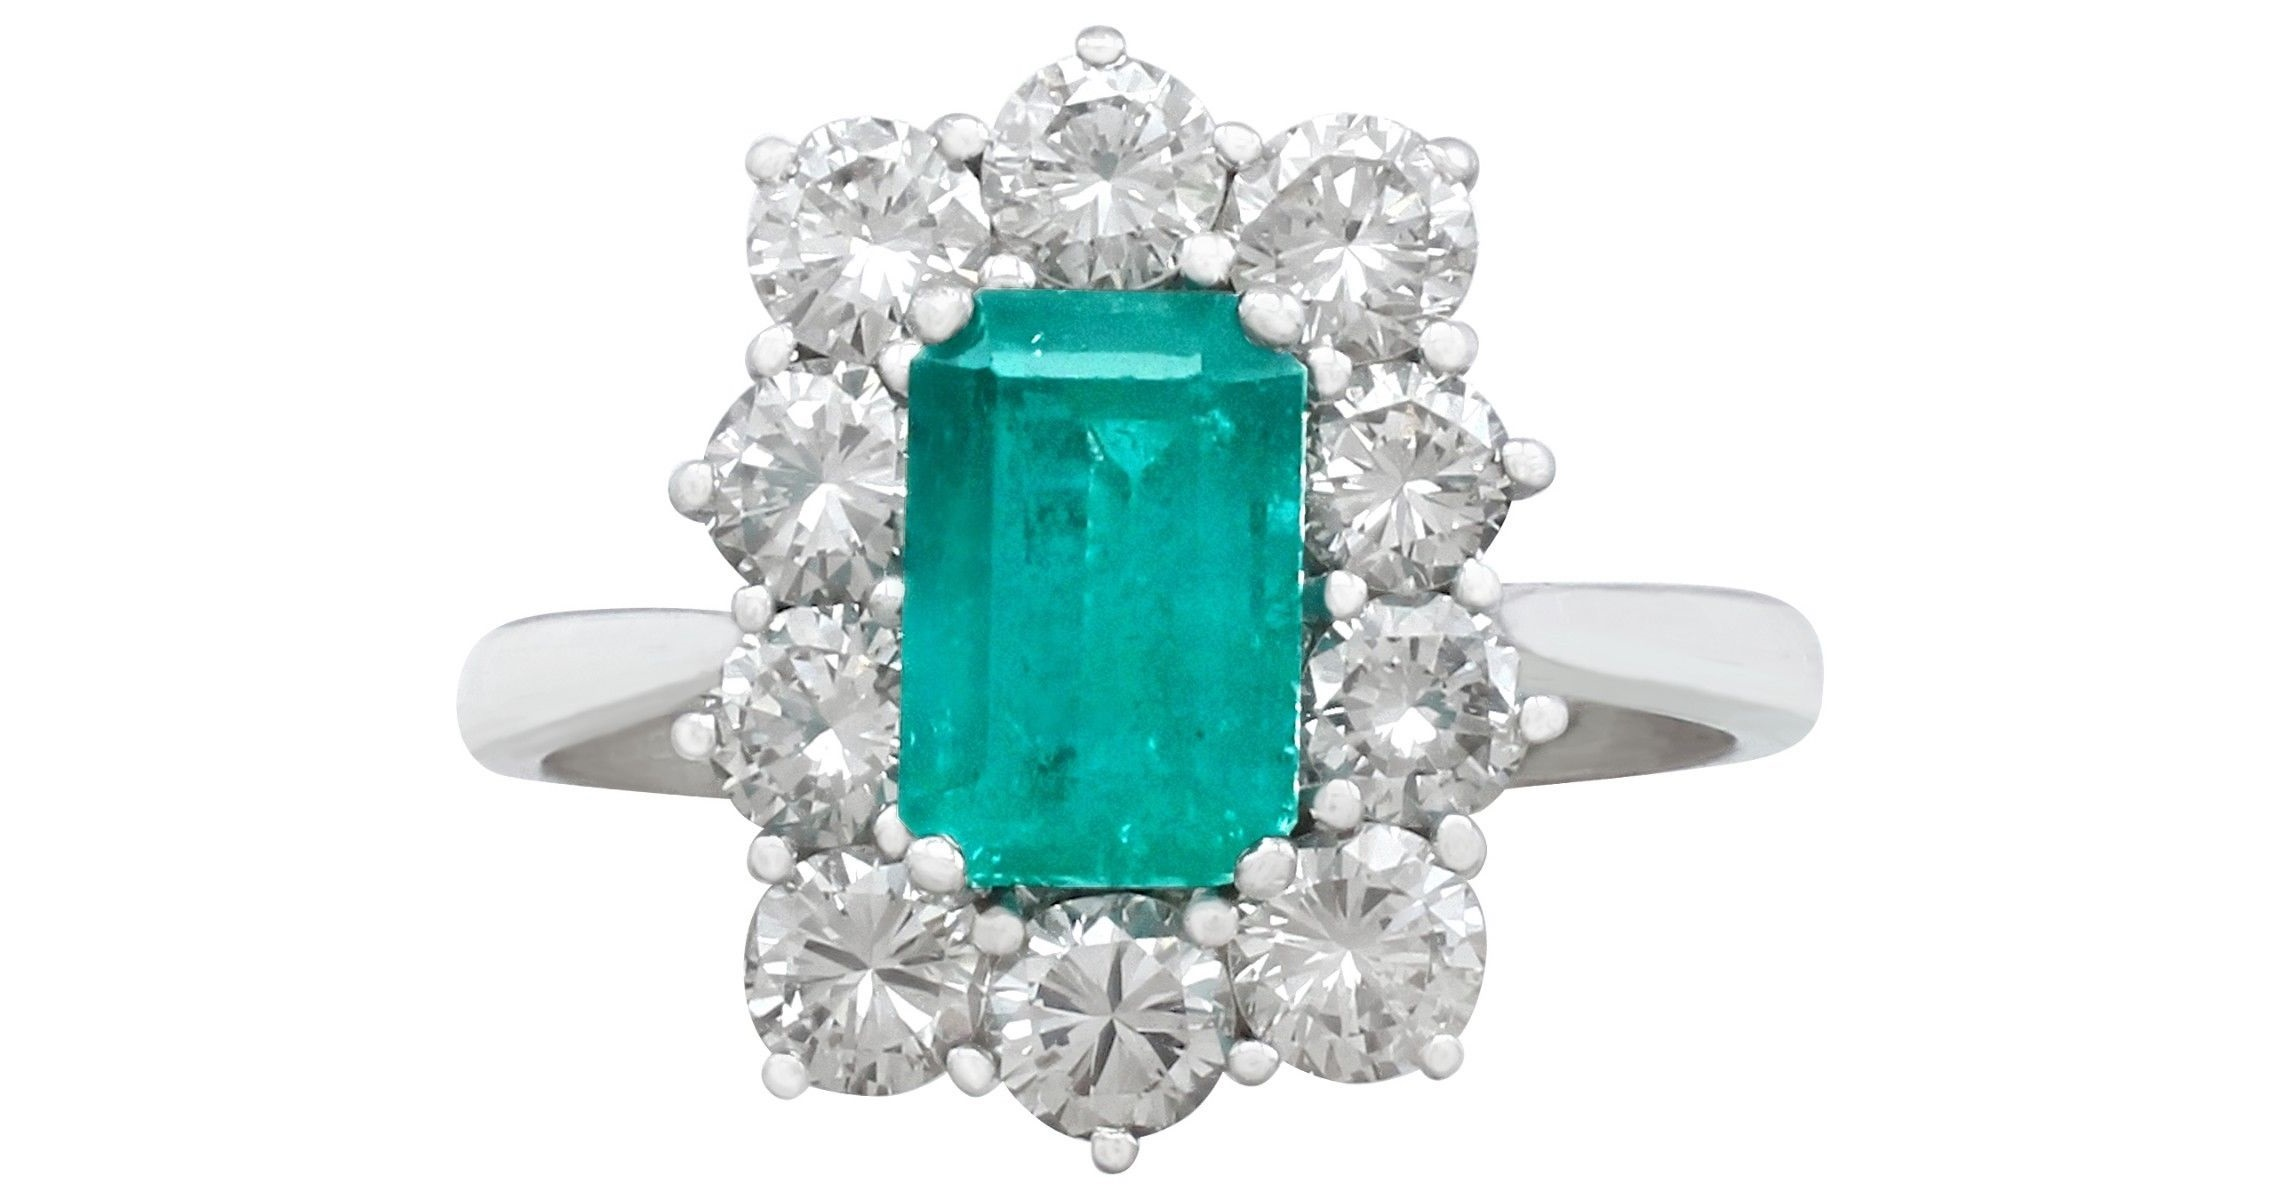 Vintage 1.57 Ct Emerald and 1.72 Ct Diamond, 18k White Gold and Cluster Ring